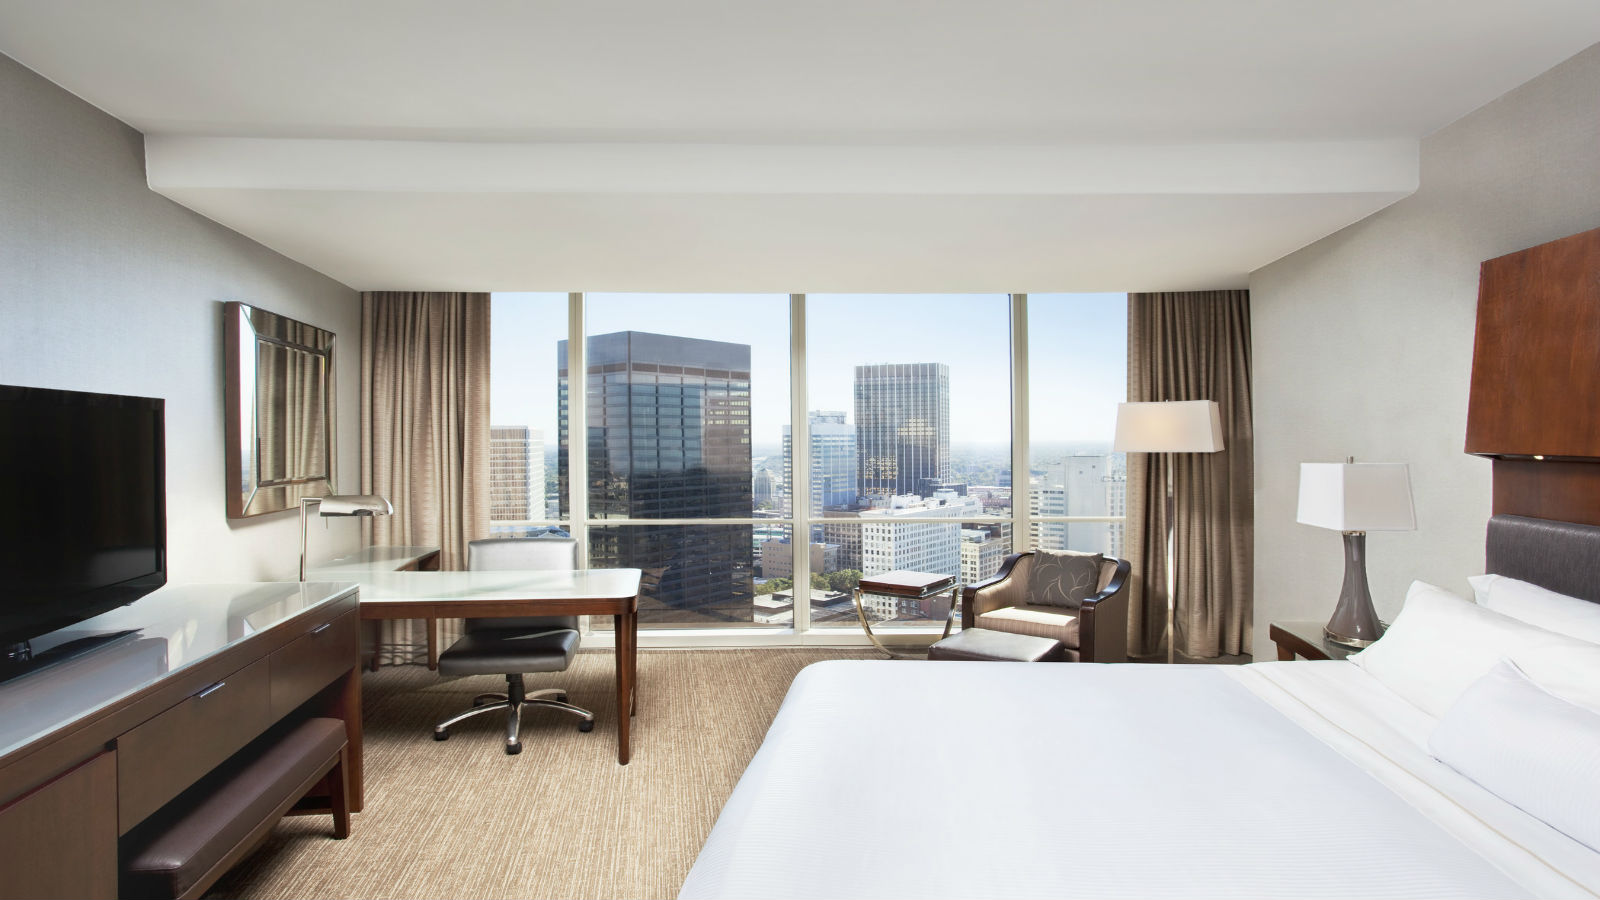 Deluxe Guestroom - The Westin Peachtree Plaza Hotel